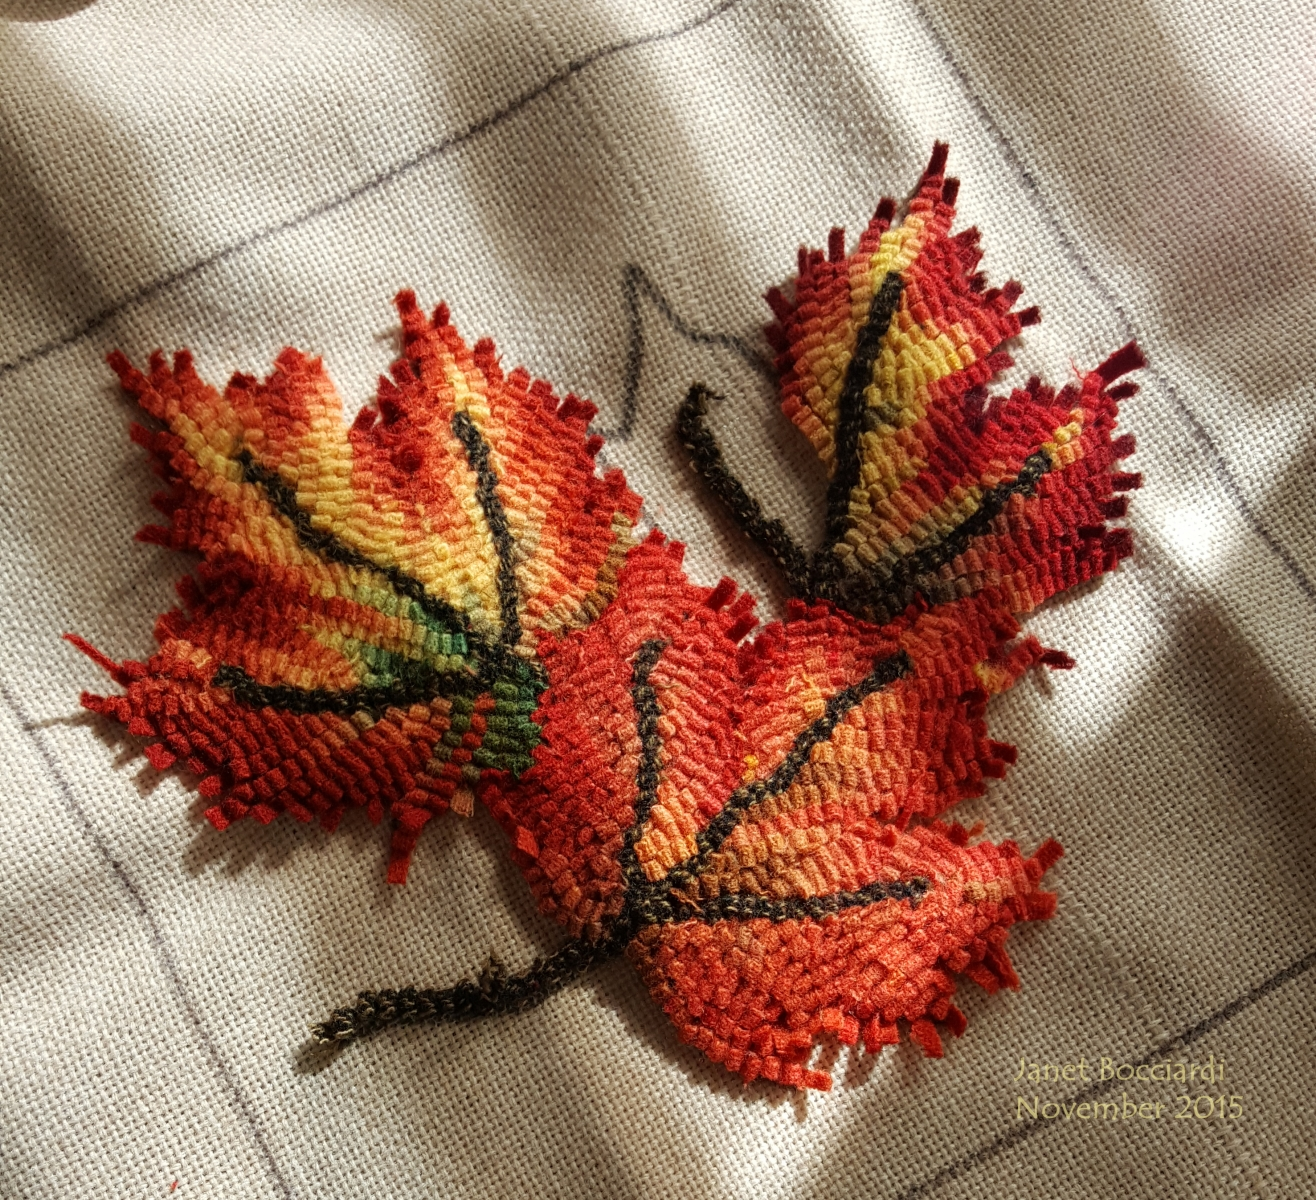 Autumn leaves hooked rug